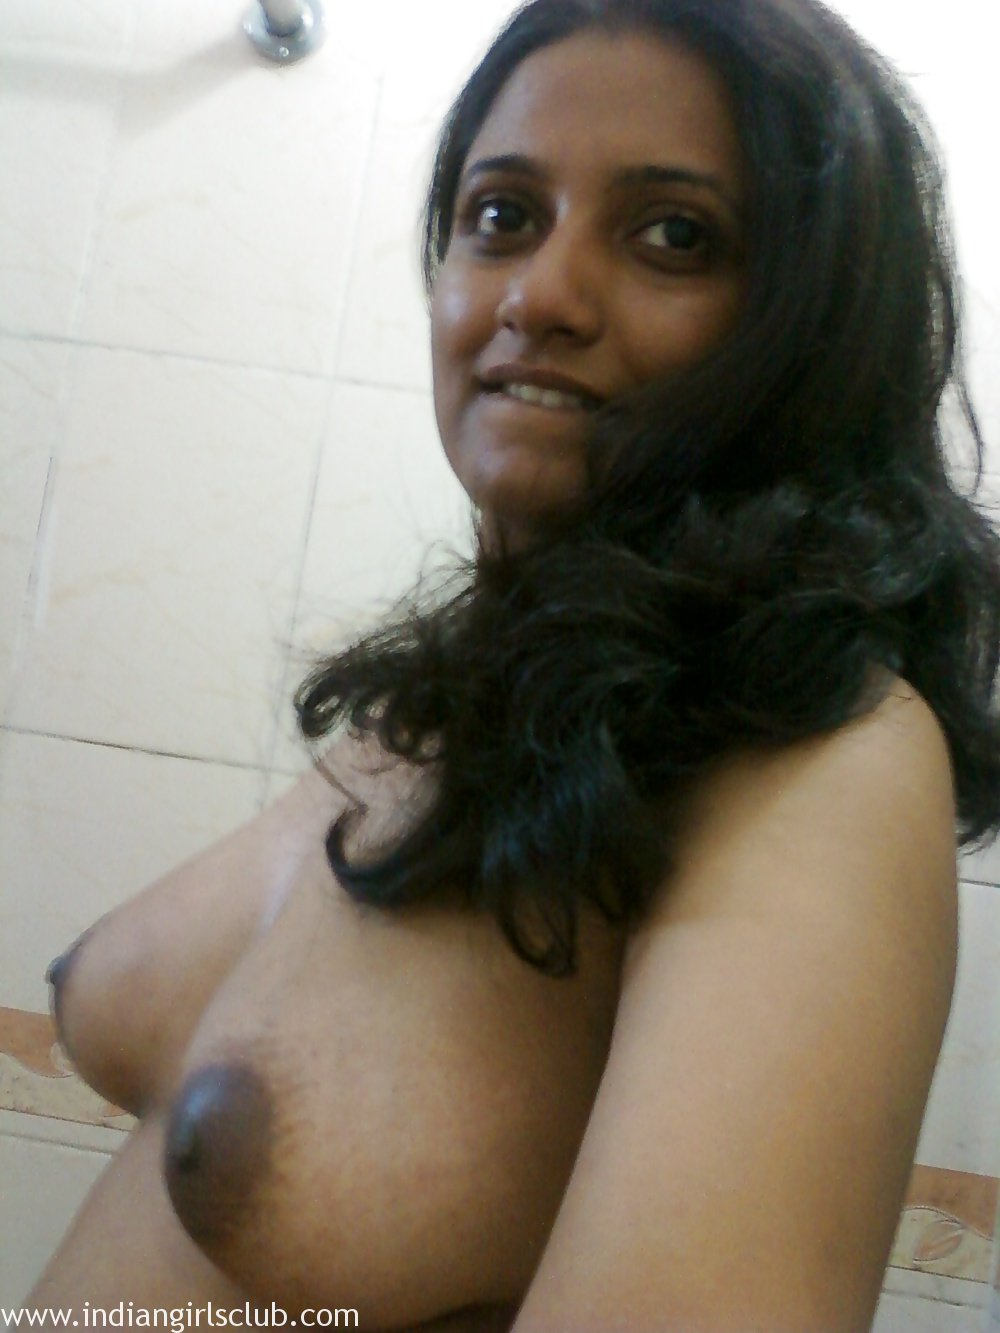 from Ryder south indian girls nudesex